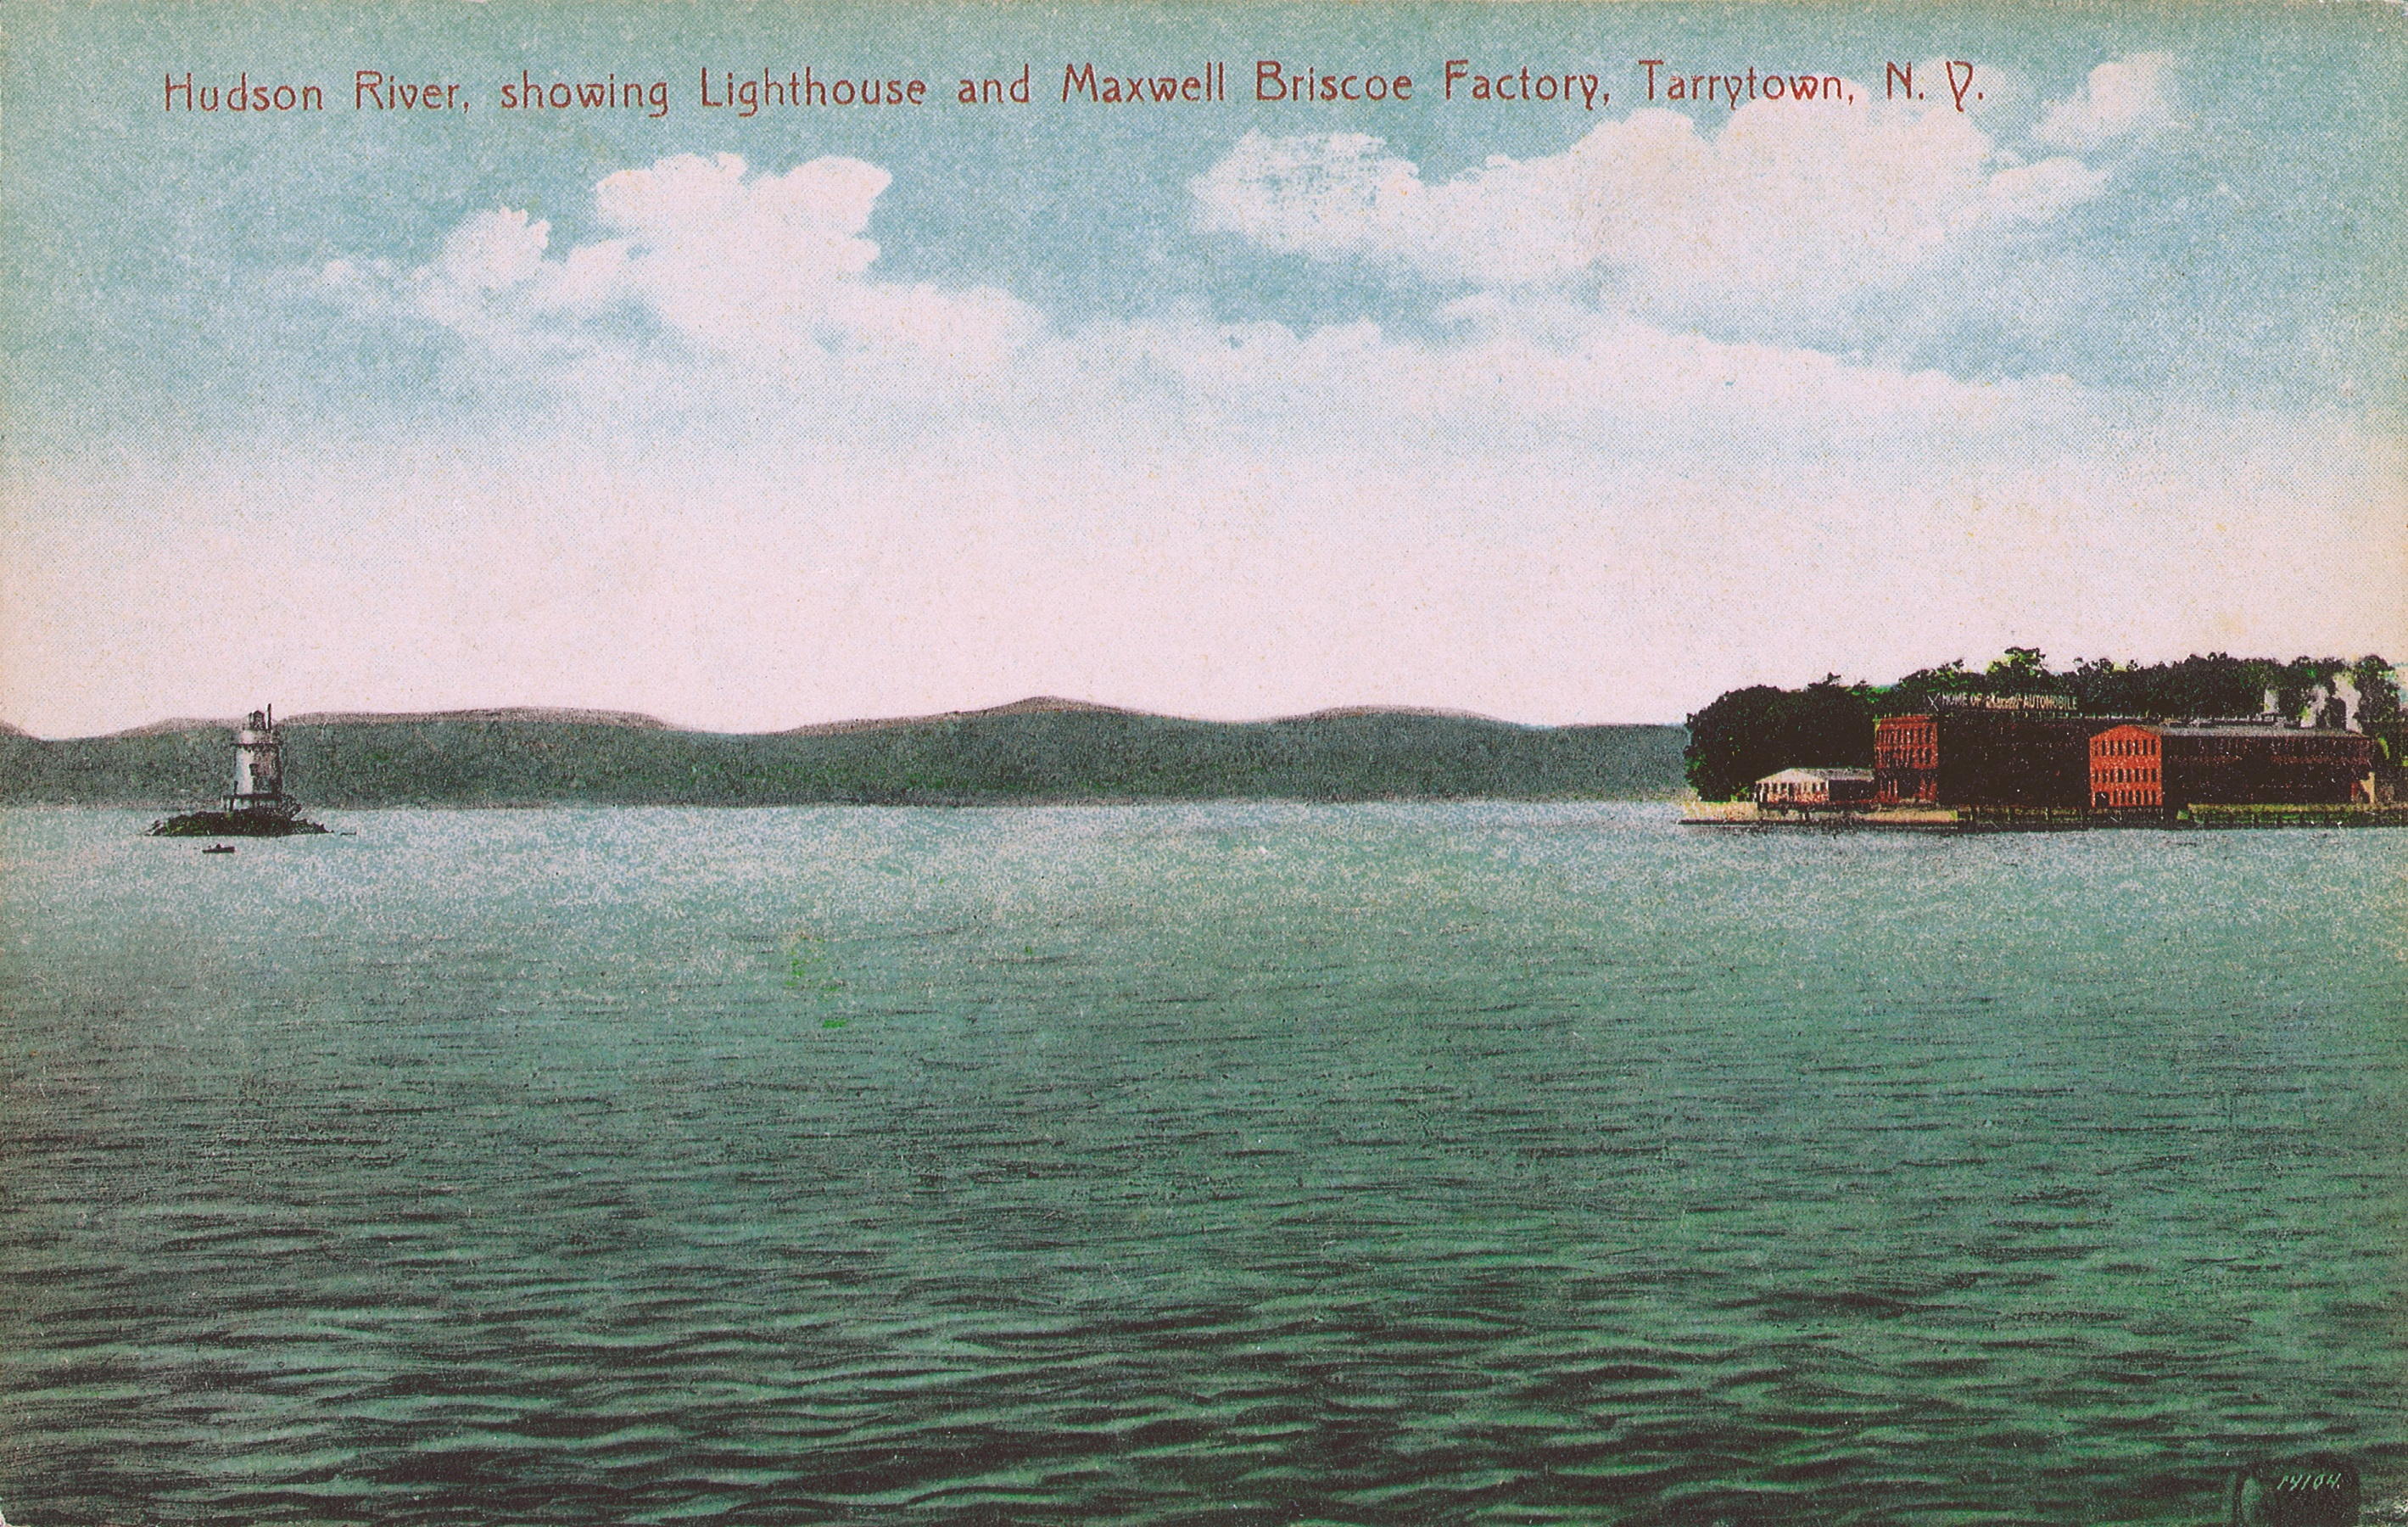 Hudson River Lighthouse and Maxwell-Briscoe Factory (1910)